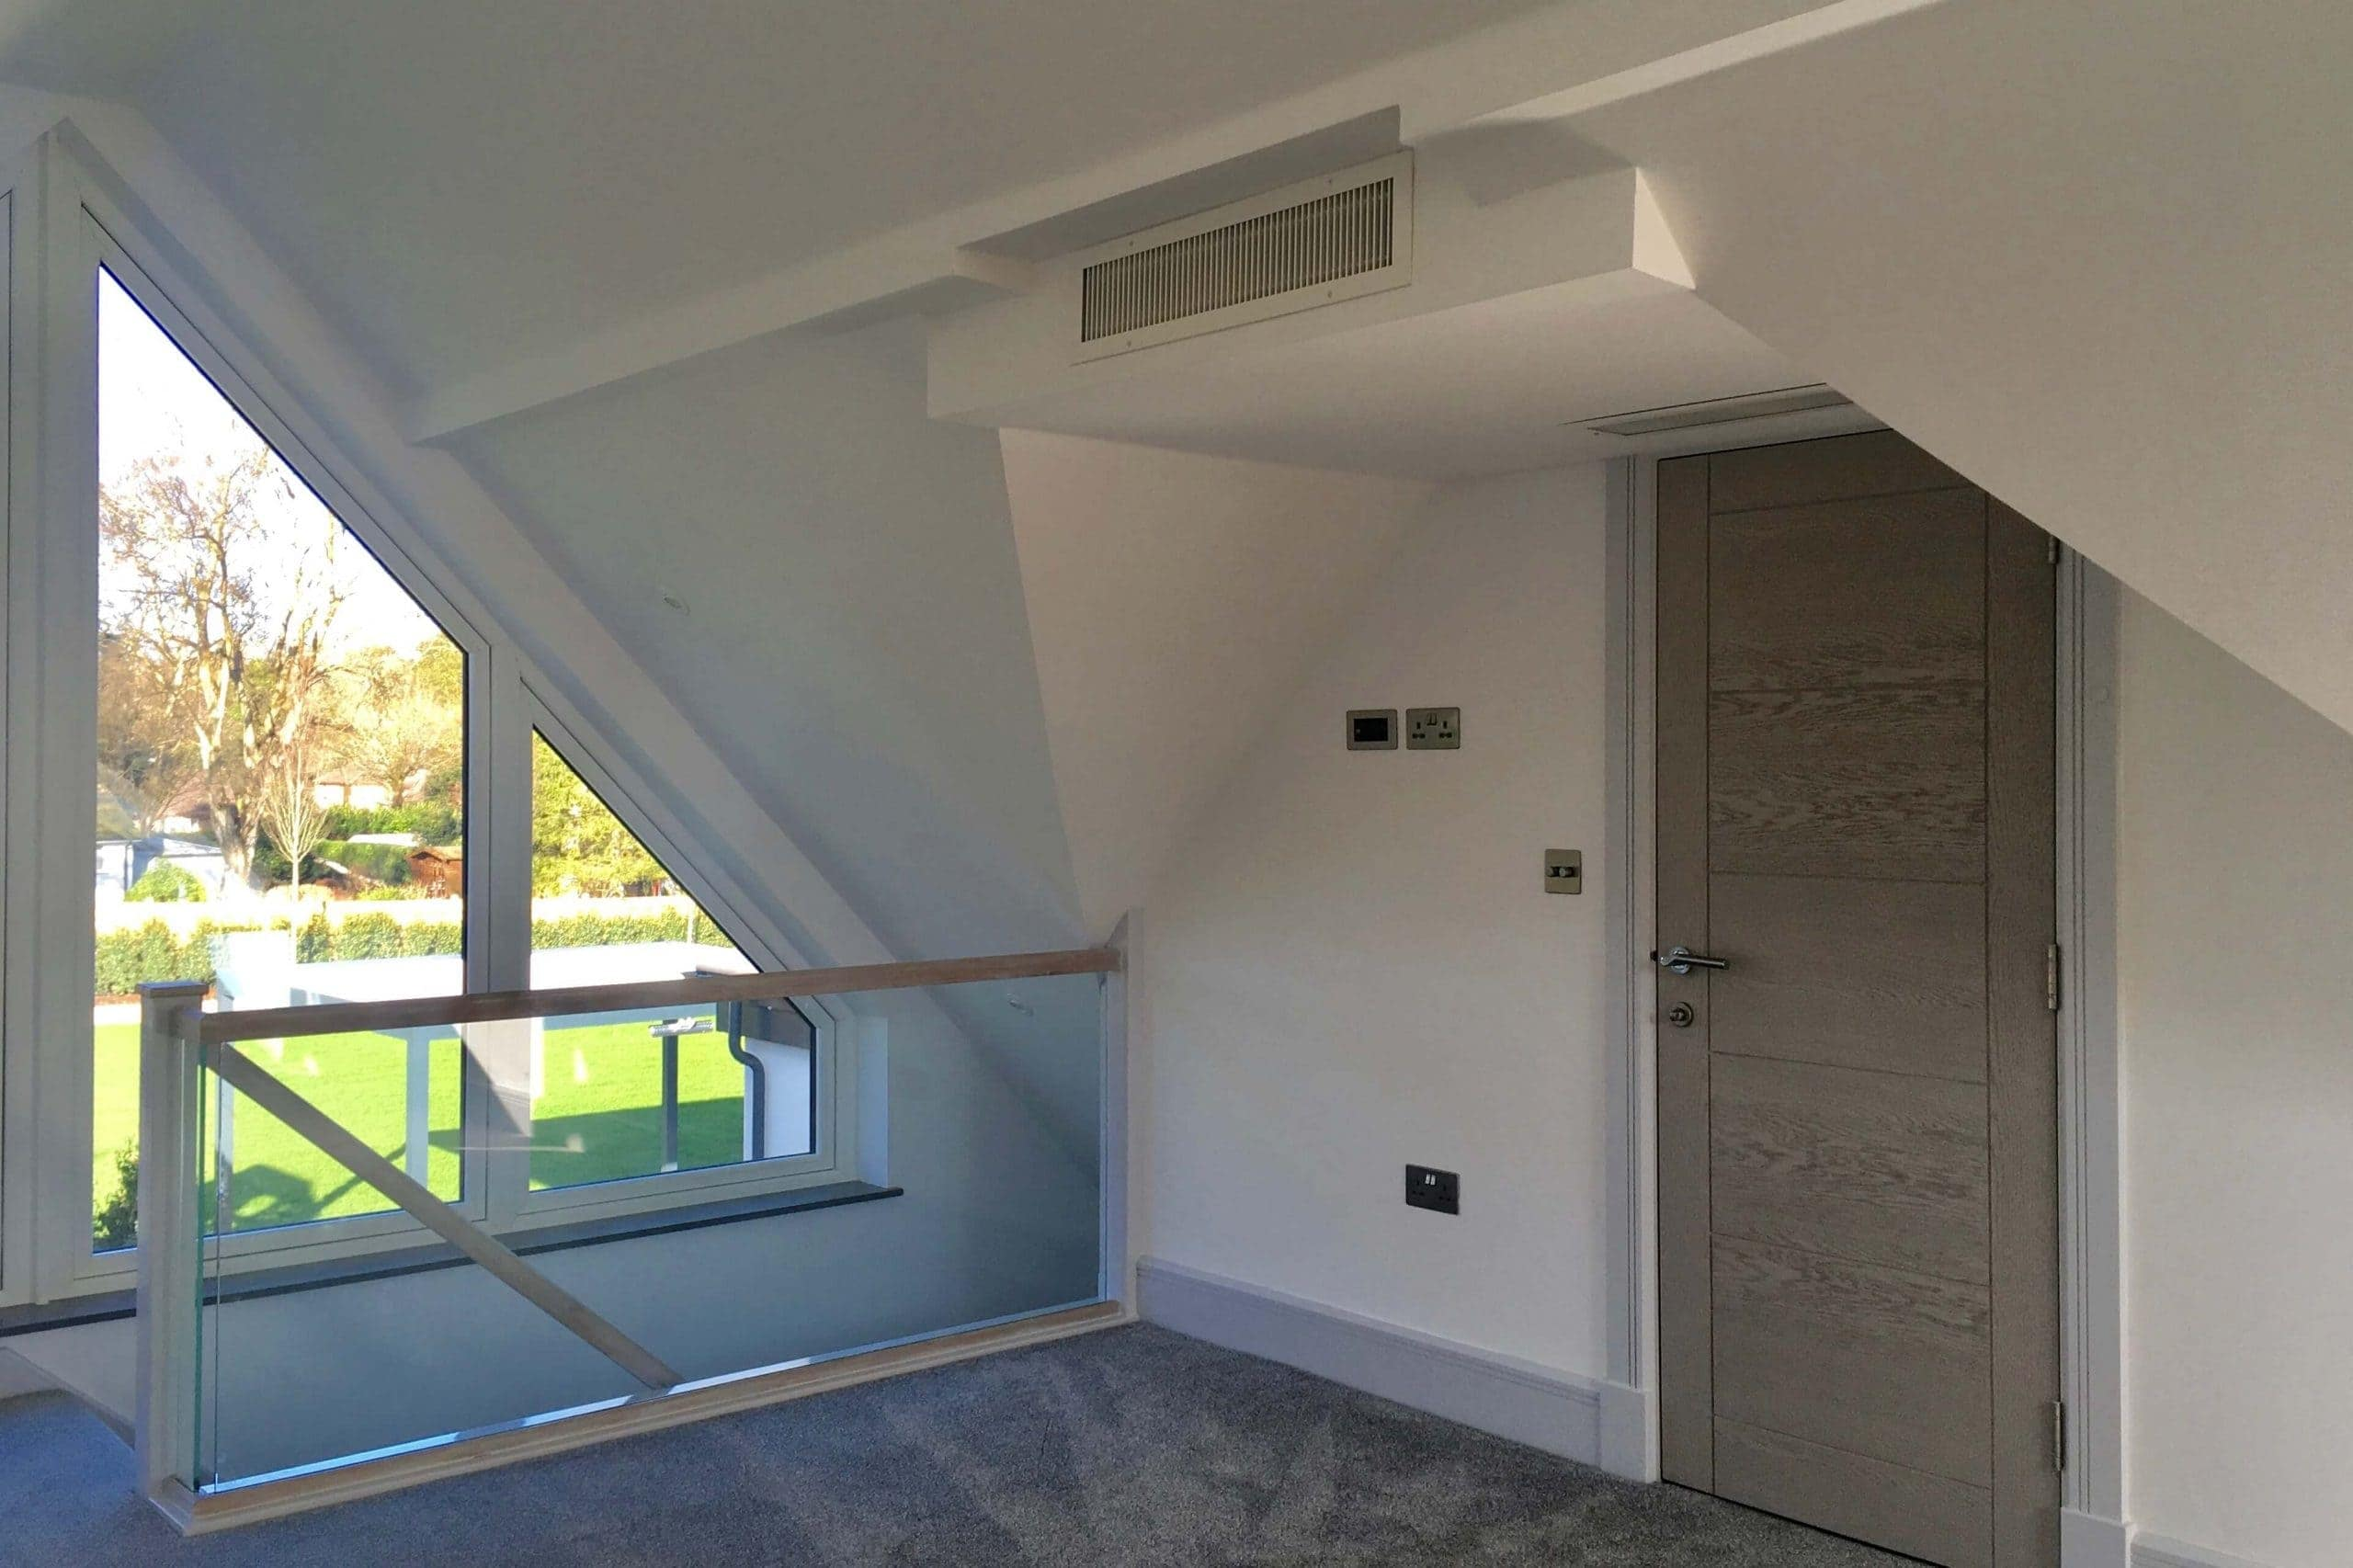 Scandia Hus new build project upstairs bedroom side view with 2 air grills by door as part of MVHR and air conditioning system by SubCool FM